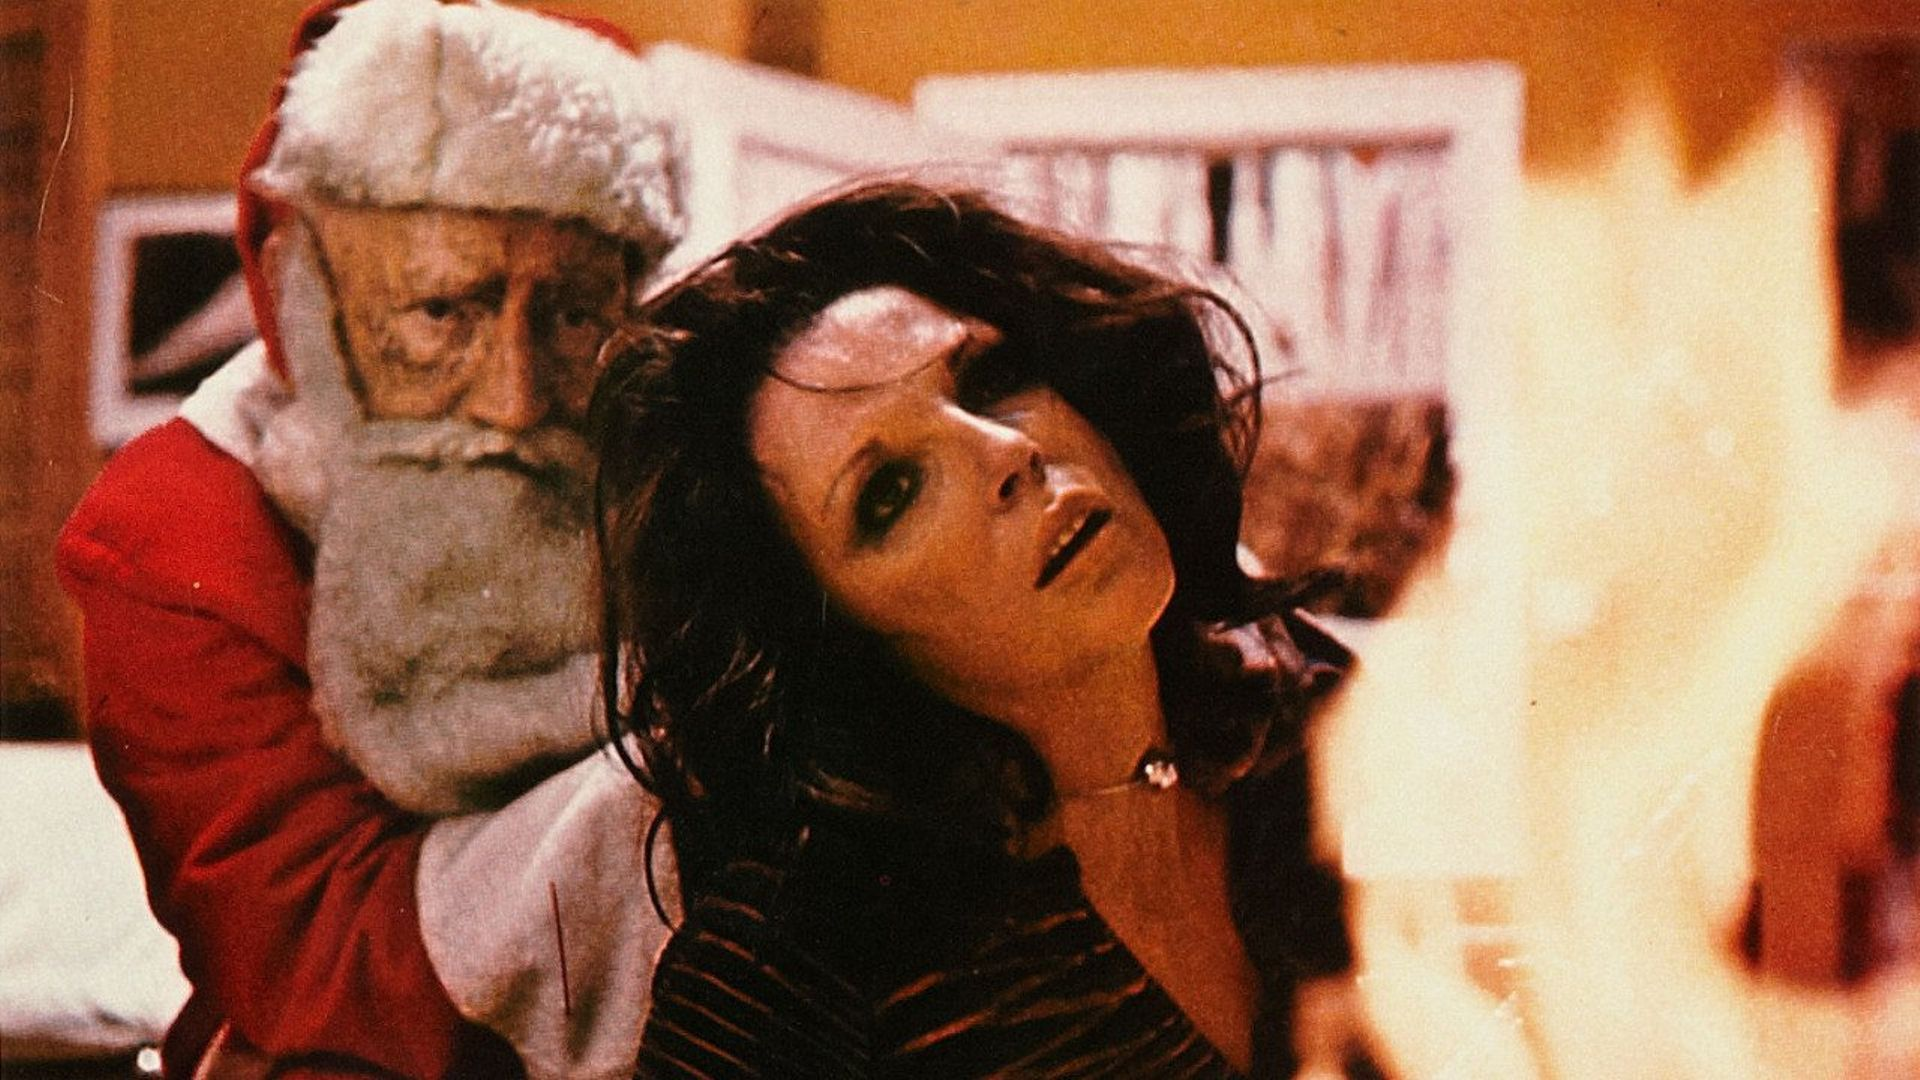 Joan Collins attacked by a Maniac Santa (Oliver MacGreevy) in the All Through the House episode of Tales from the Crypt (1972)